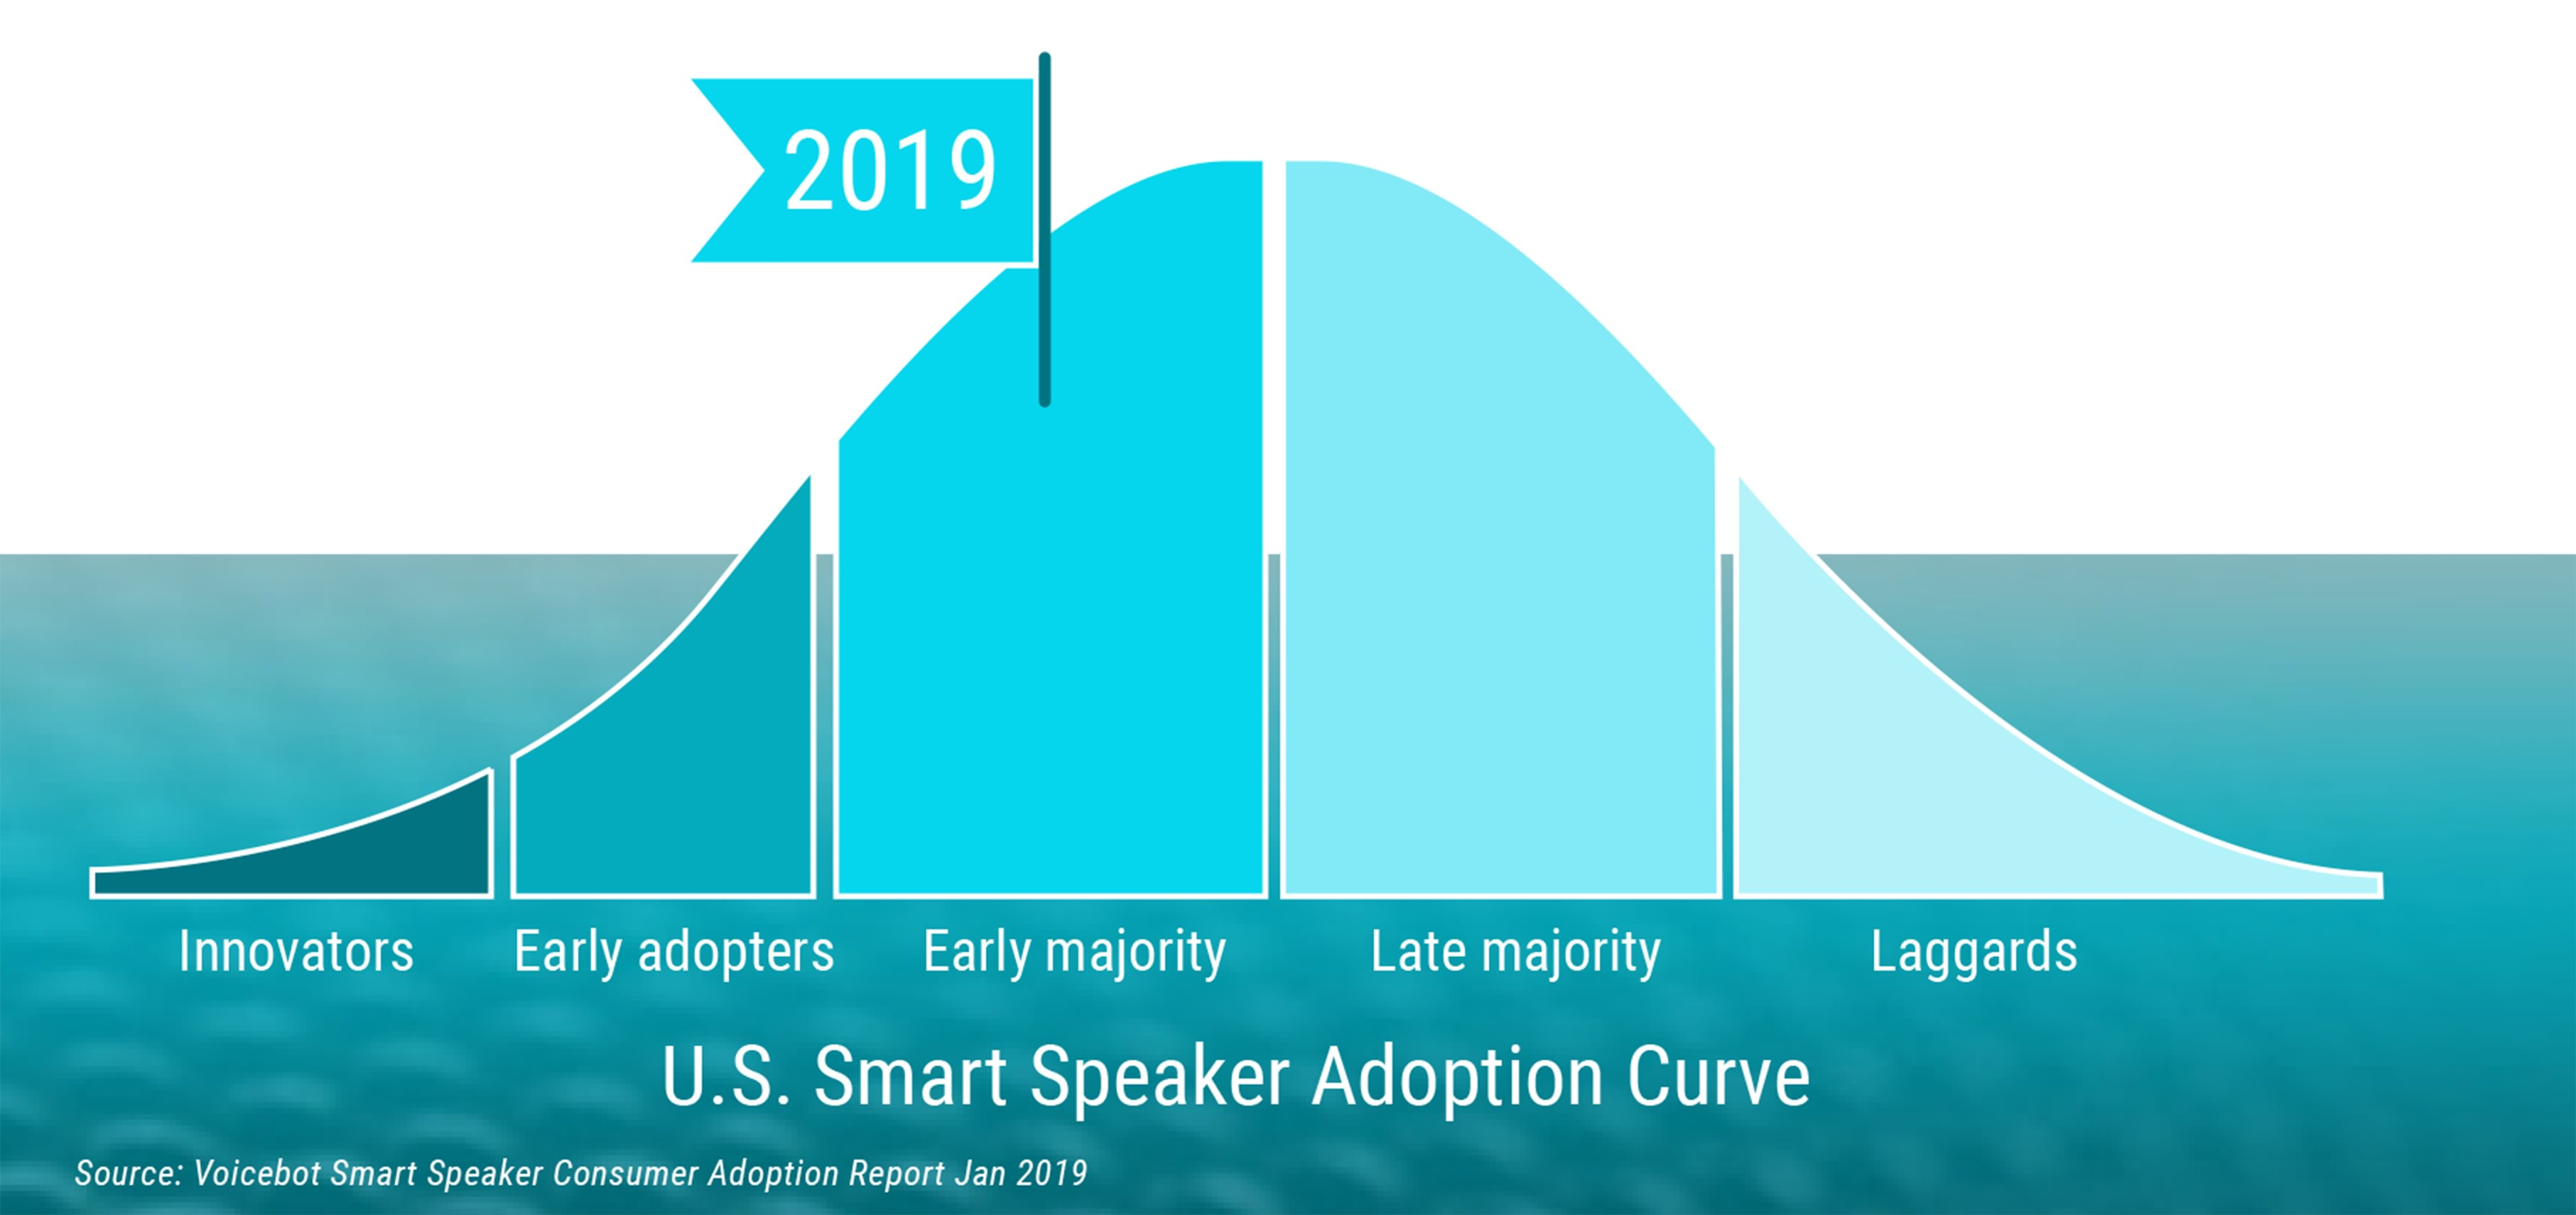 US Smart Speaker Adoption Curve diagram showing growing number of users in 2019